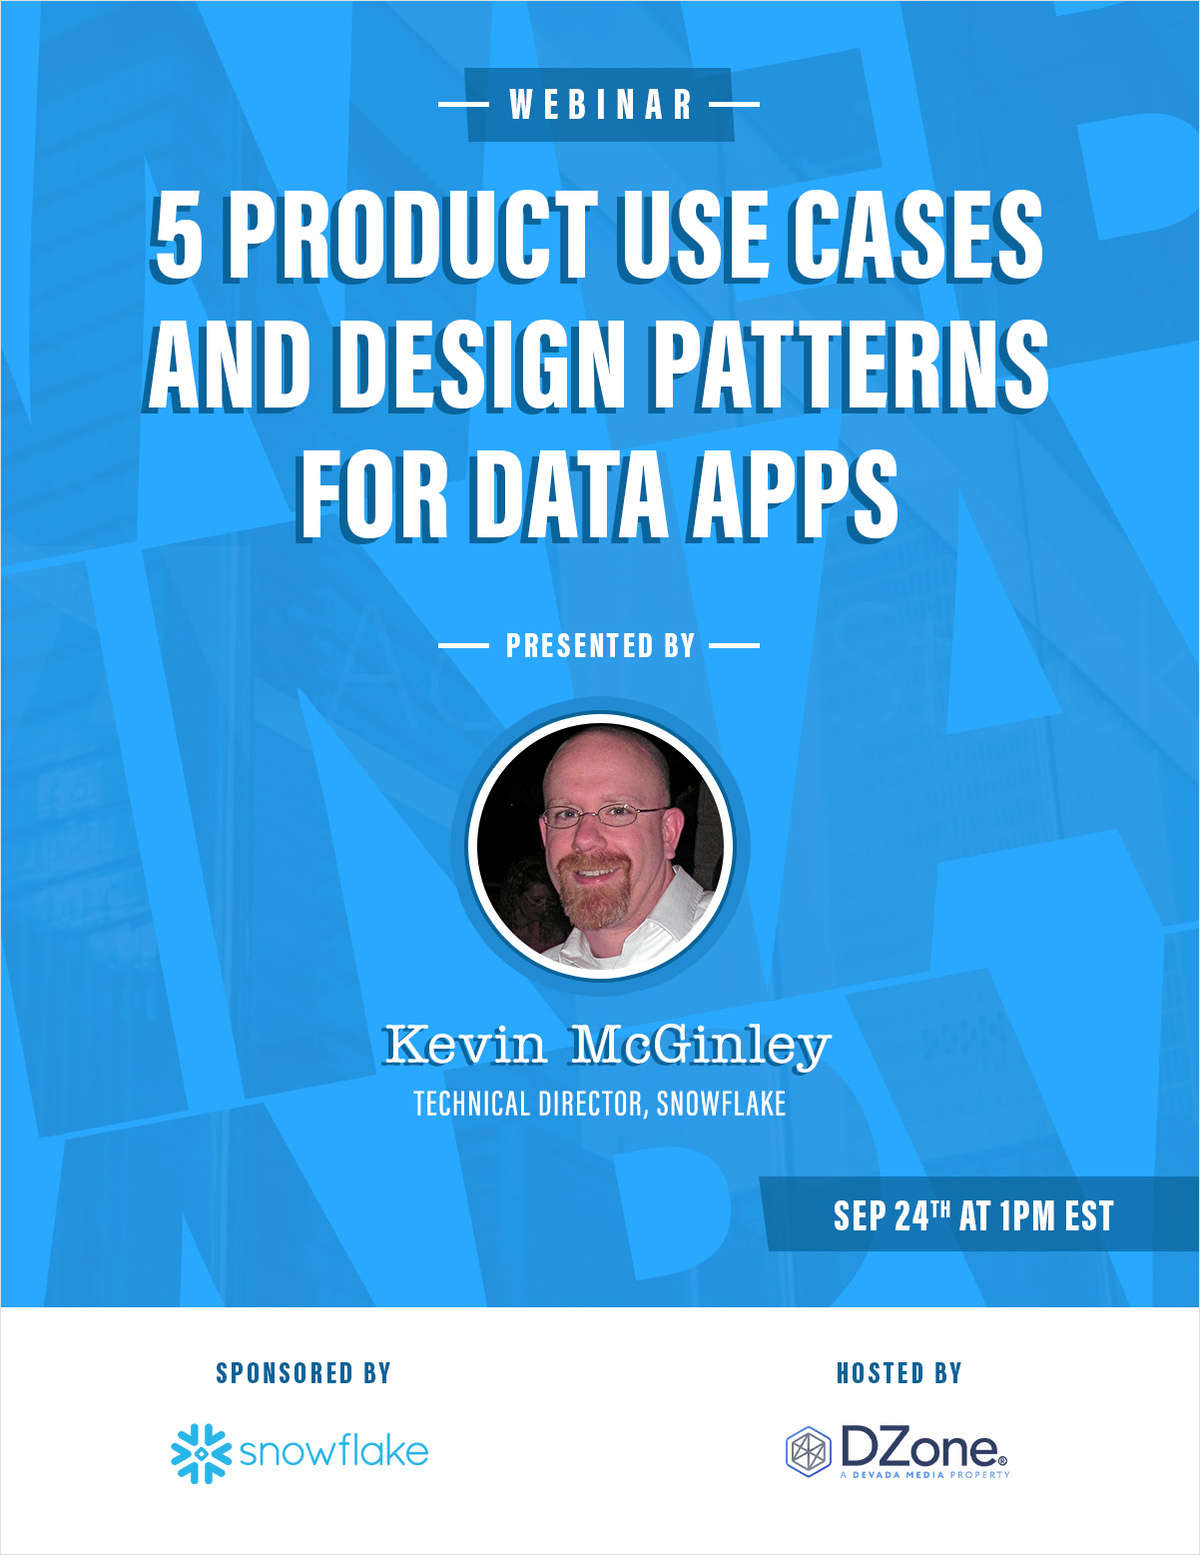 5 Product Use Cases and Design Patterns for Data Apps